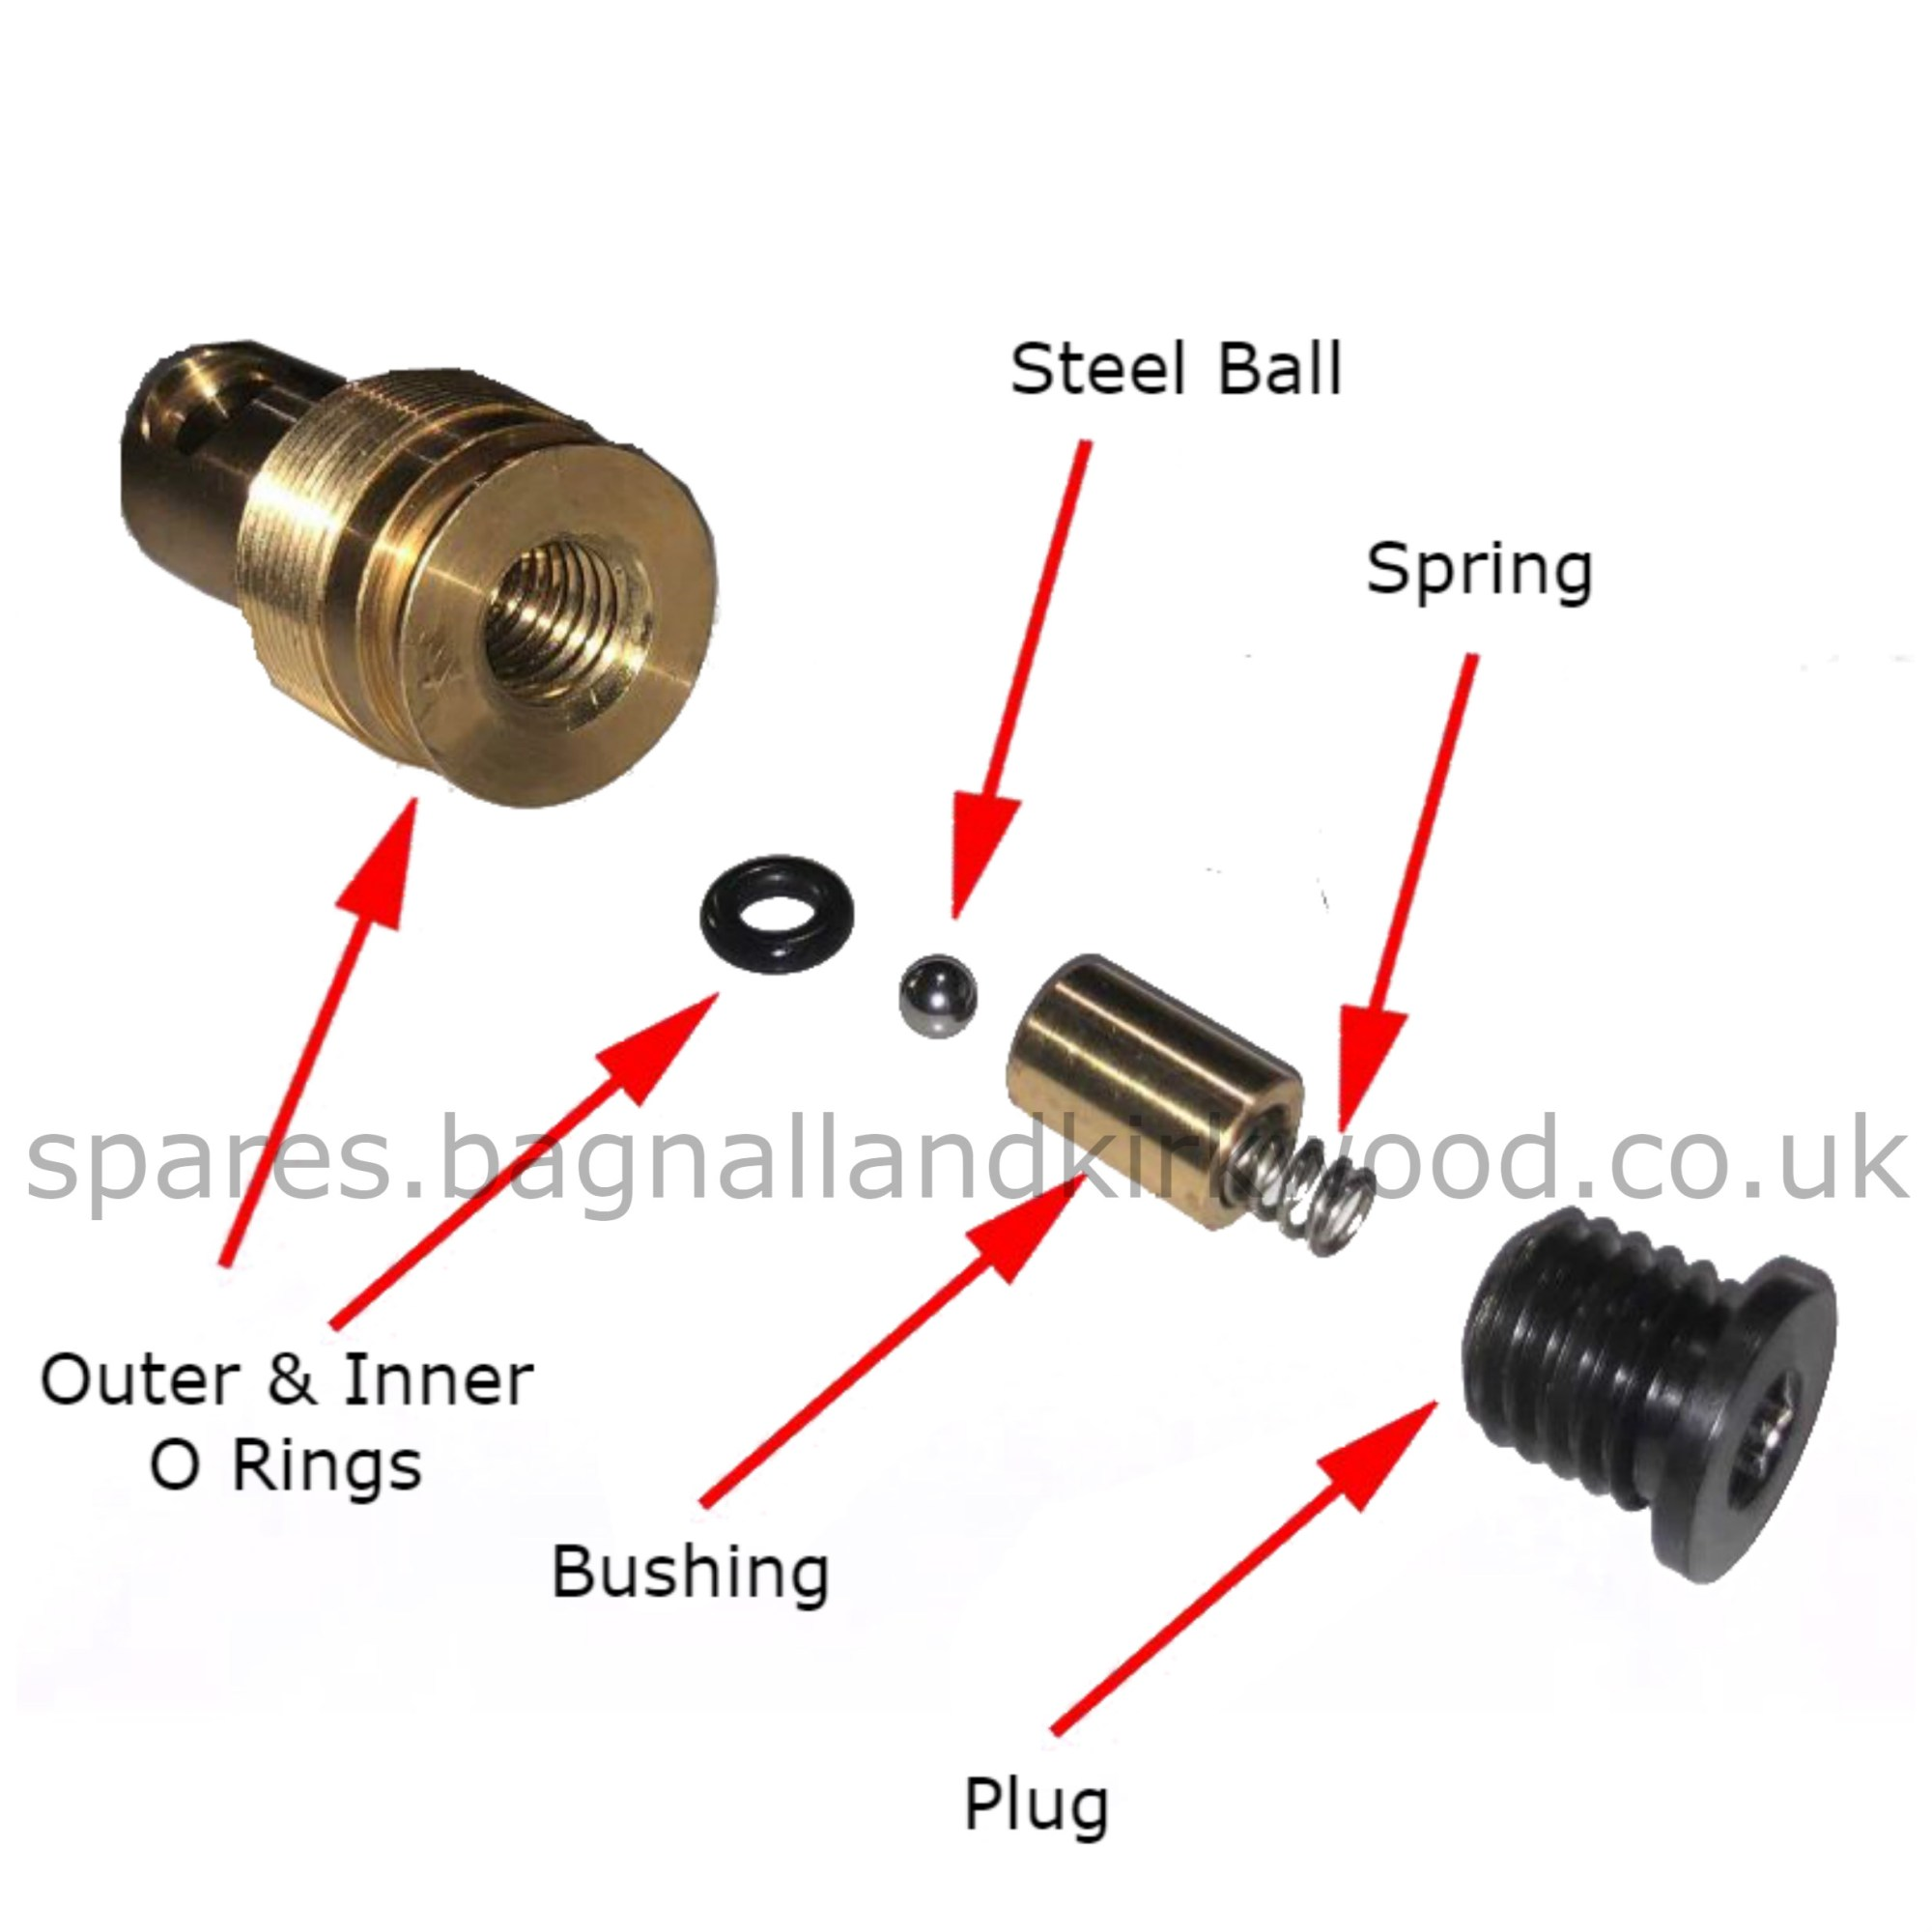 hight resolution of bagnall and kirkwood airgun spares